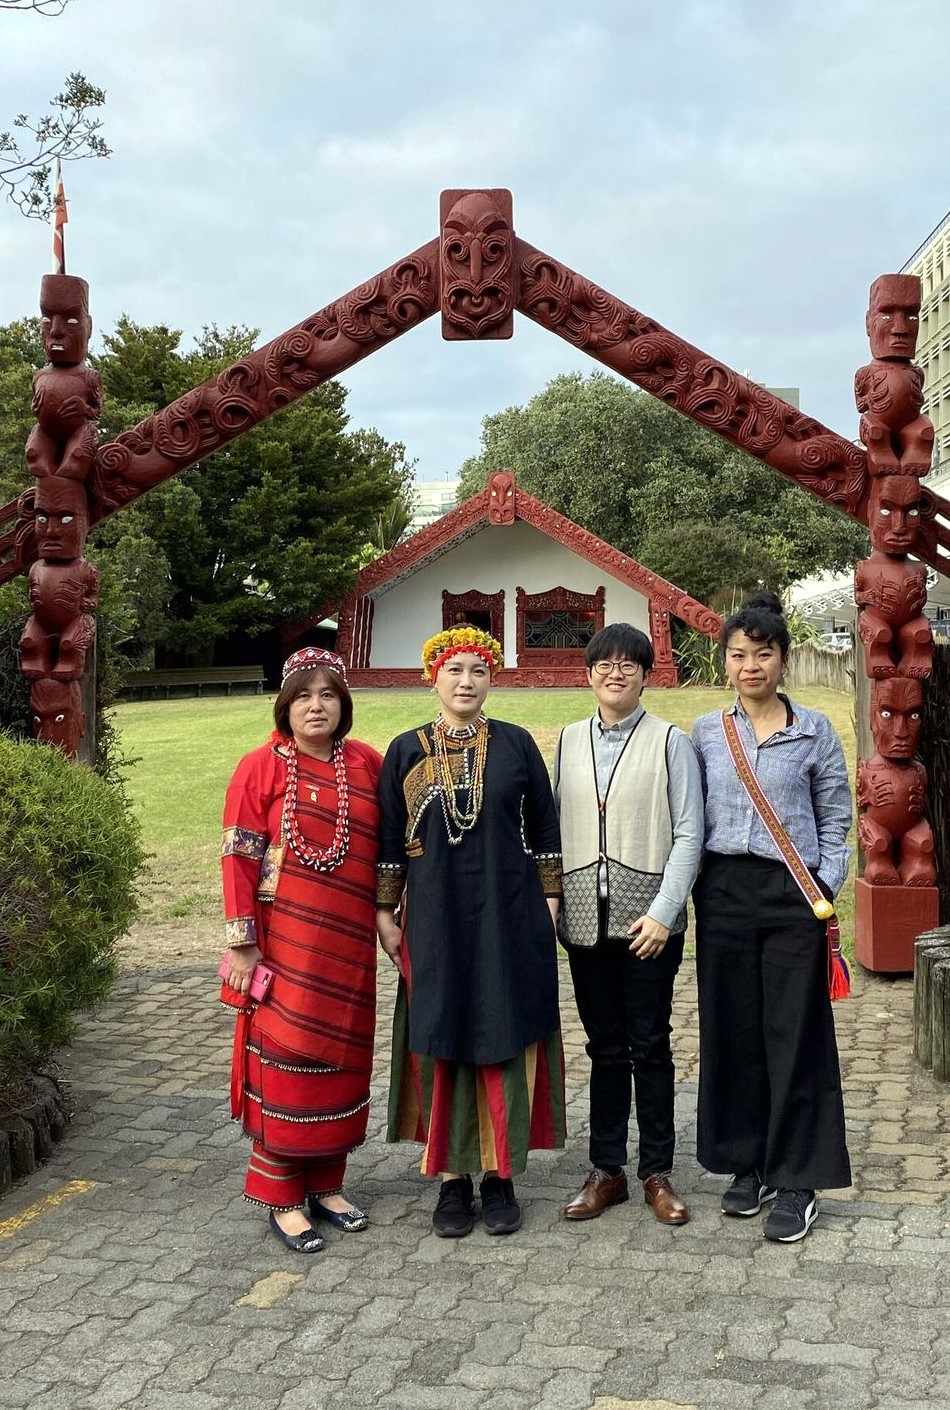 Group photo was taken at the University of Auckland's Waipapa Marae.(Photo from left to right Ciwas Bawan, Pisuy Bawnay, Ciwang Teyra, and Yi-Jen Tu)